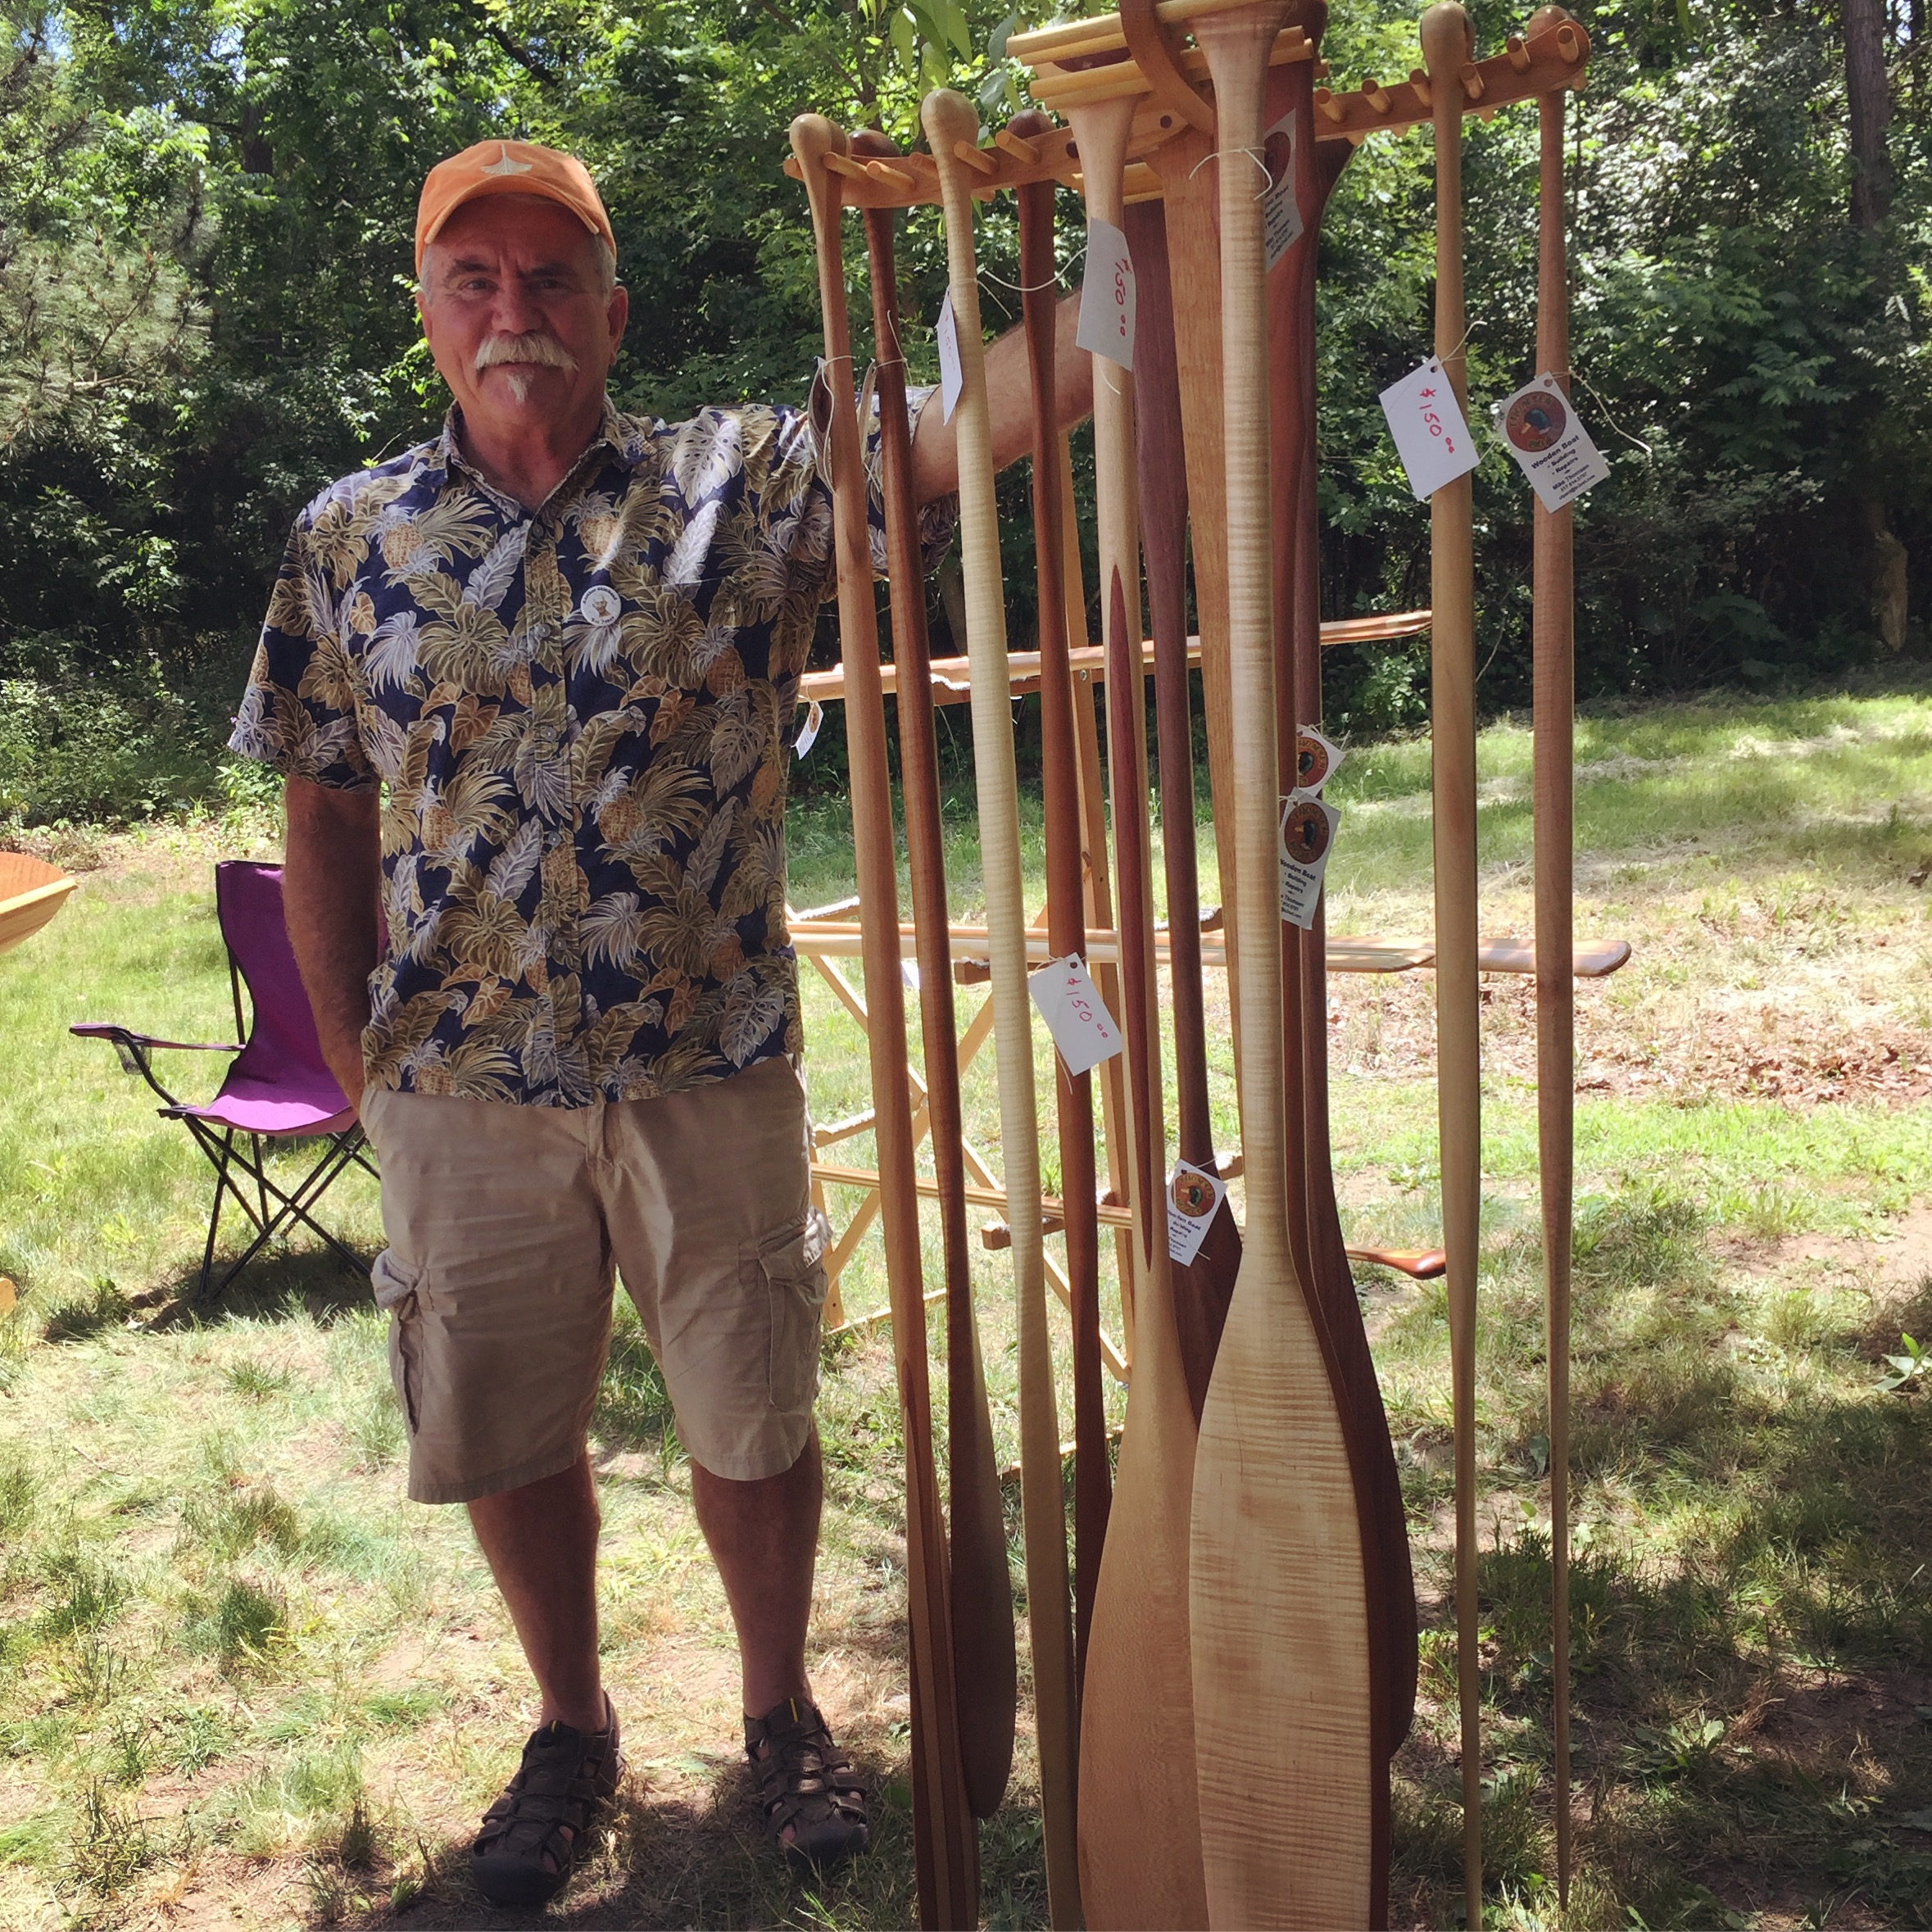 Canoe Mike Thomsen of Thomsen Boats at the Great Lakes Woodworking Festival